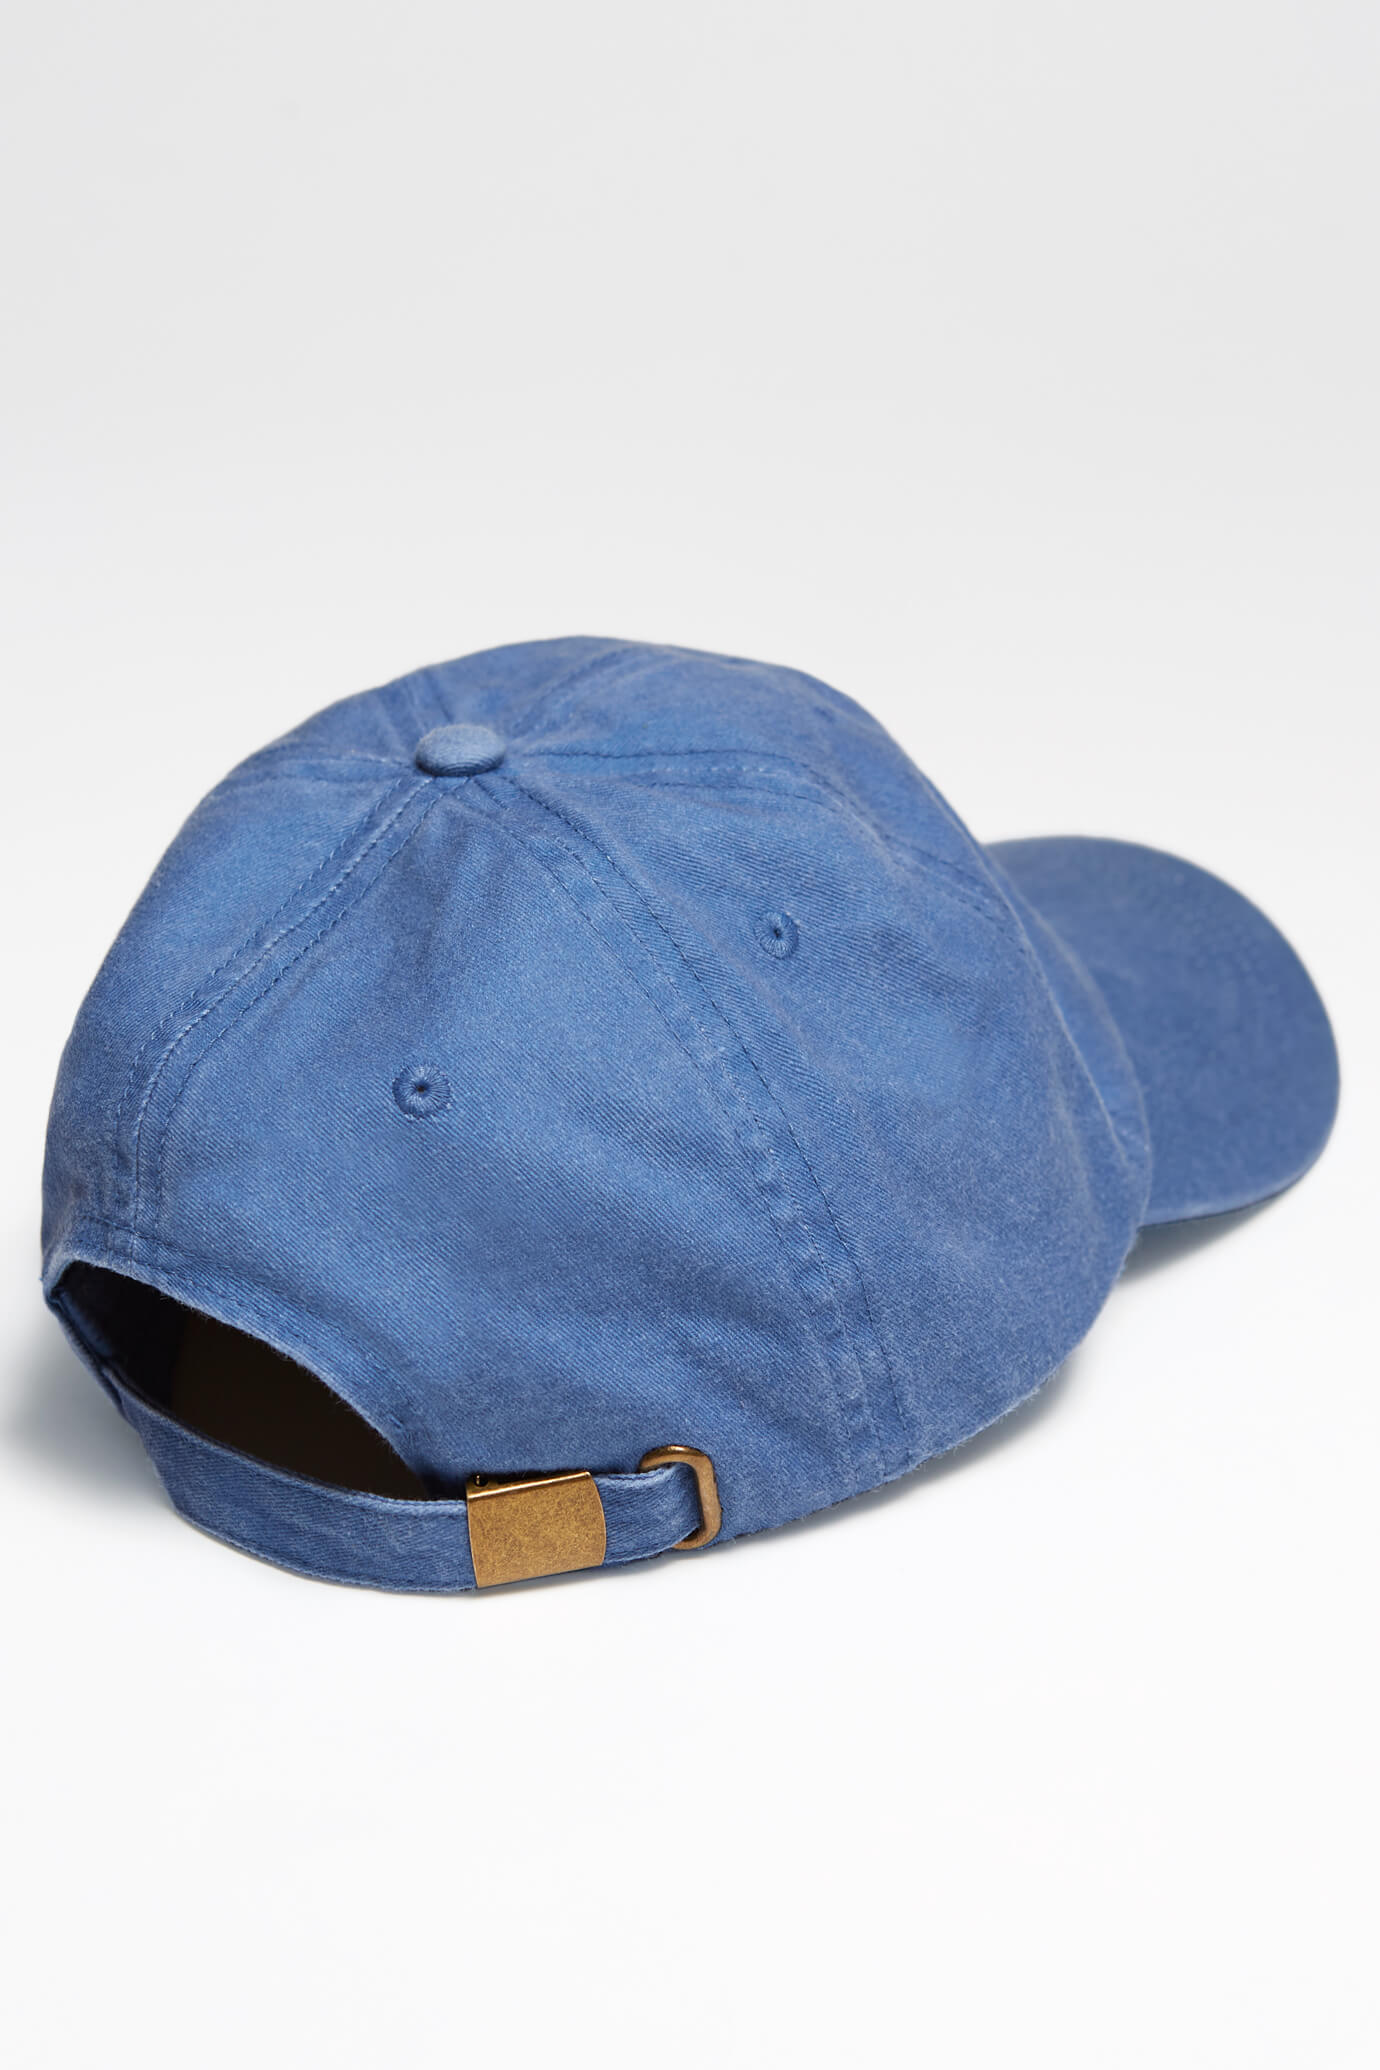 taproot pictures hat in blue rooty back